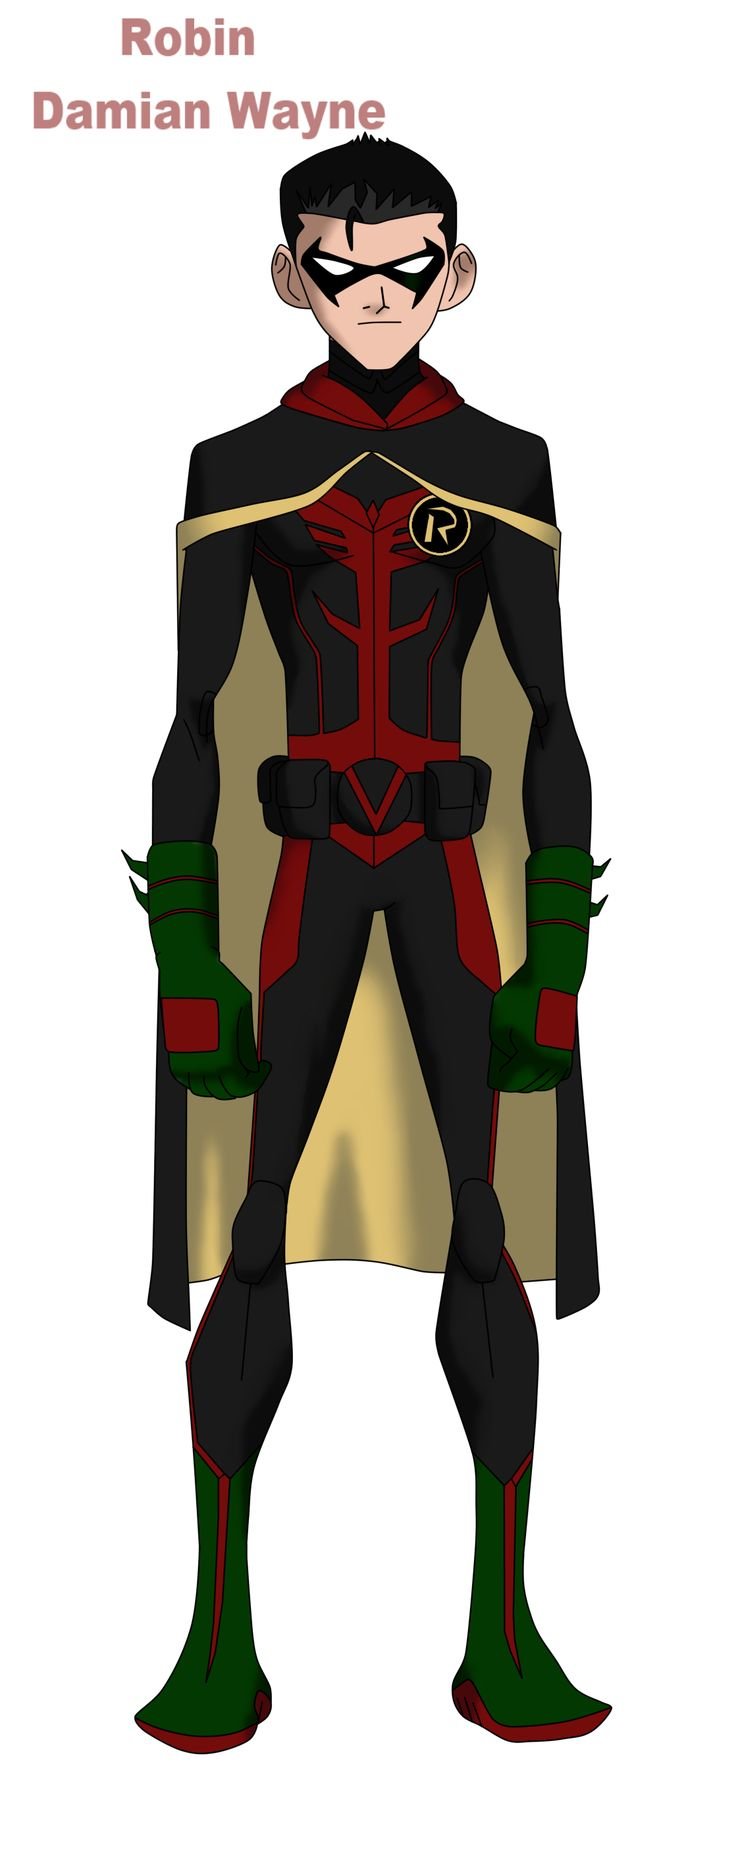 Damian Wayne Young Justice Concept by Bobkitty23 on deviantART